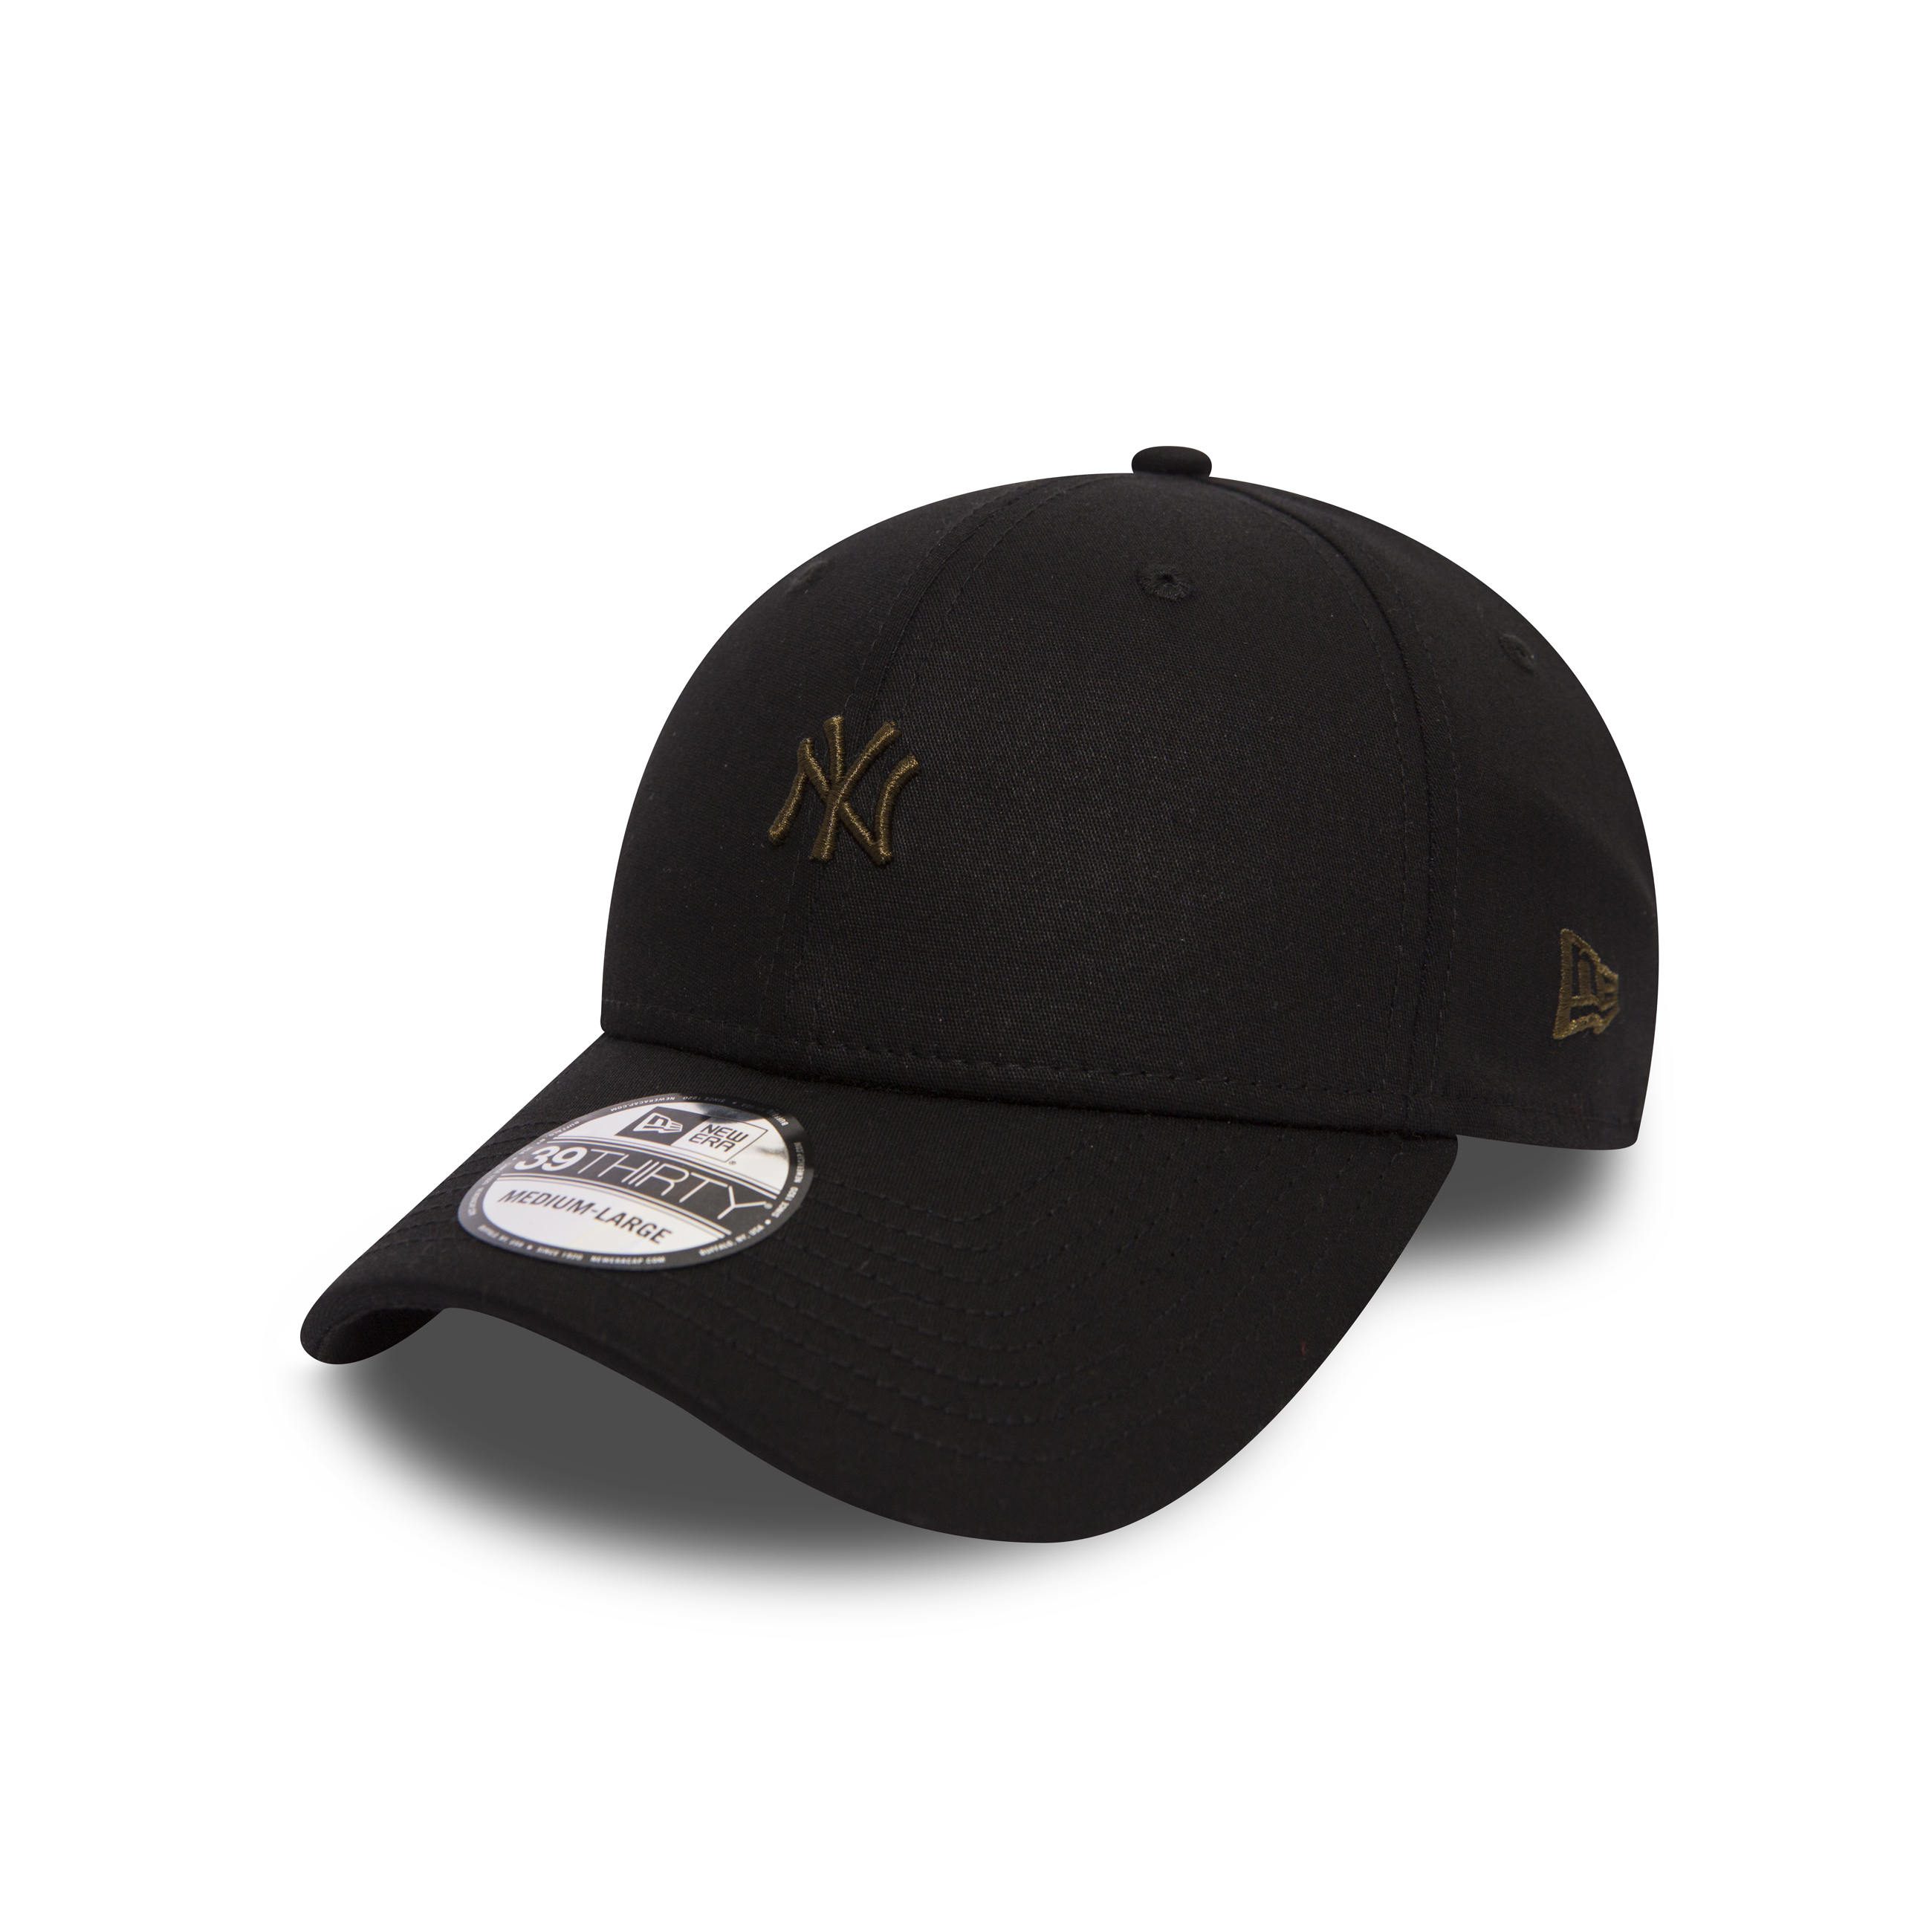 445b4756ea0 Details about New Era MLB New York Yankees Mini Logo Cap Black